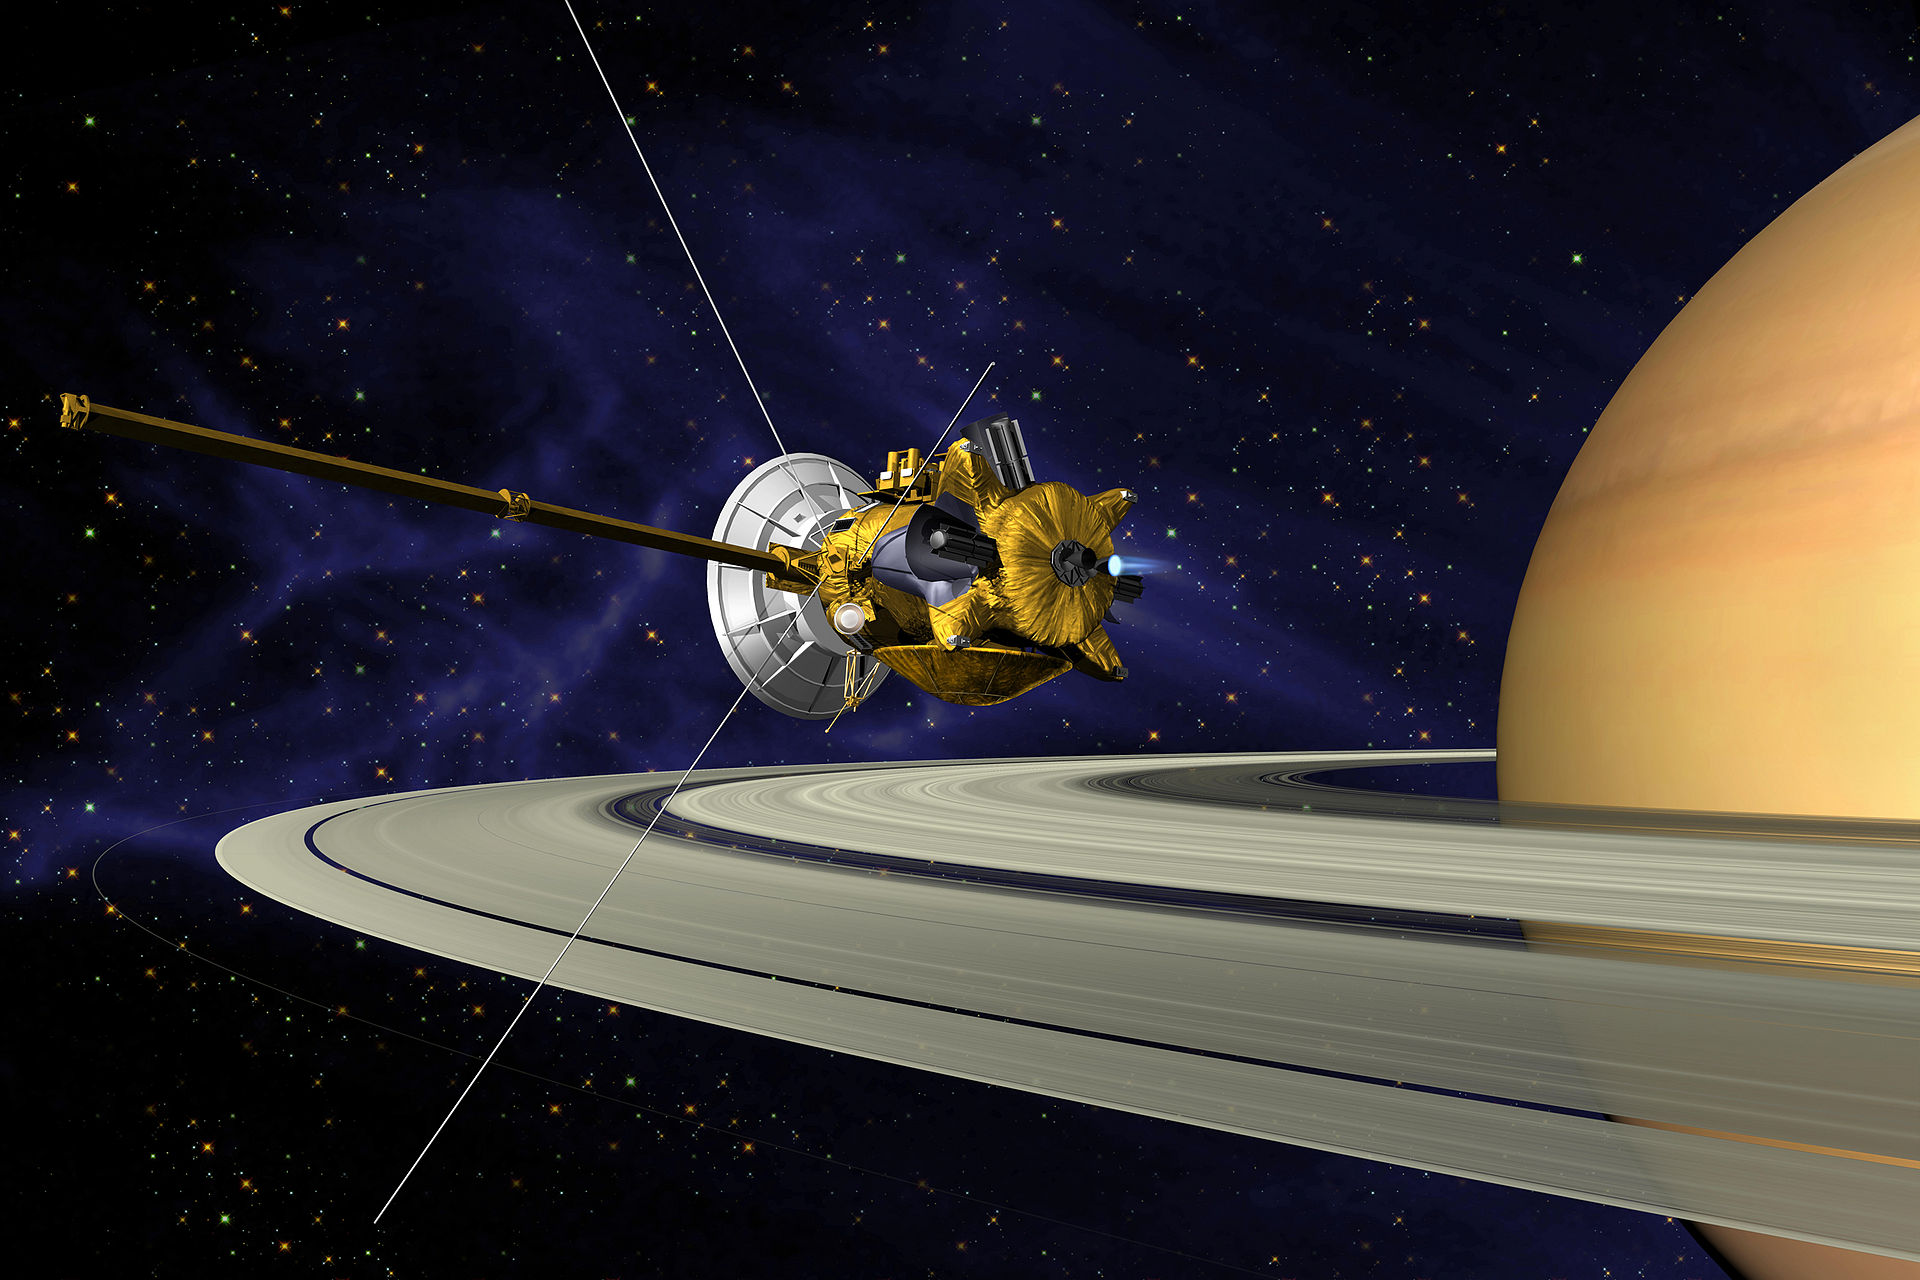 cassini space probe jupiter - photo #33